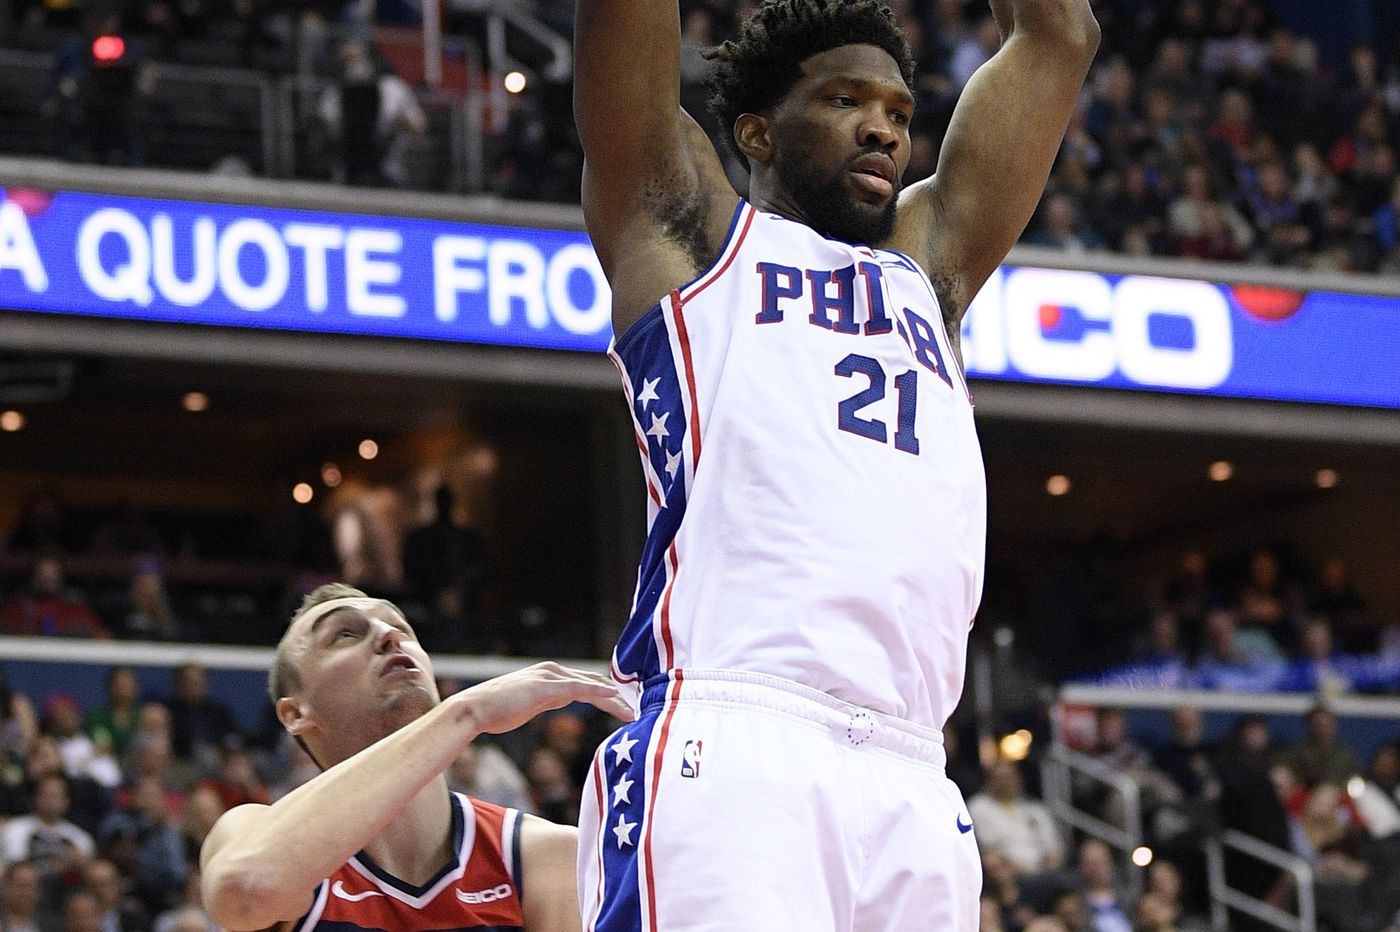 Even after loss, Sixers look to regain confidence, swagger before grueling stretch